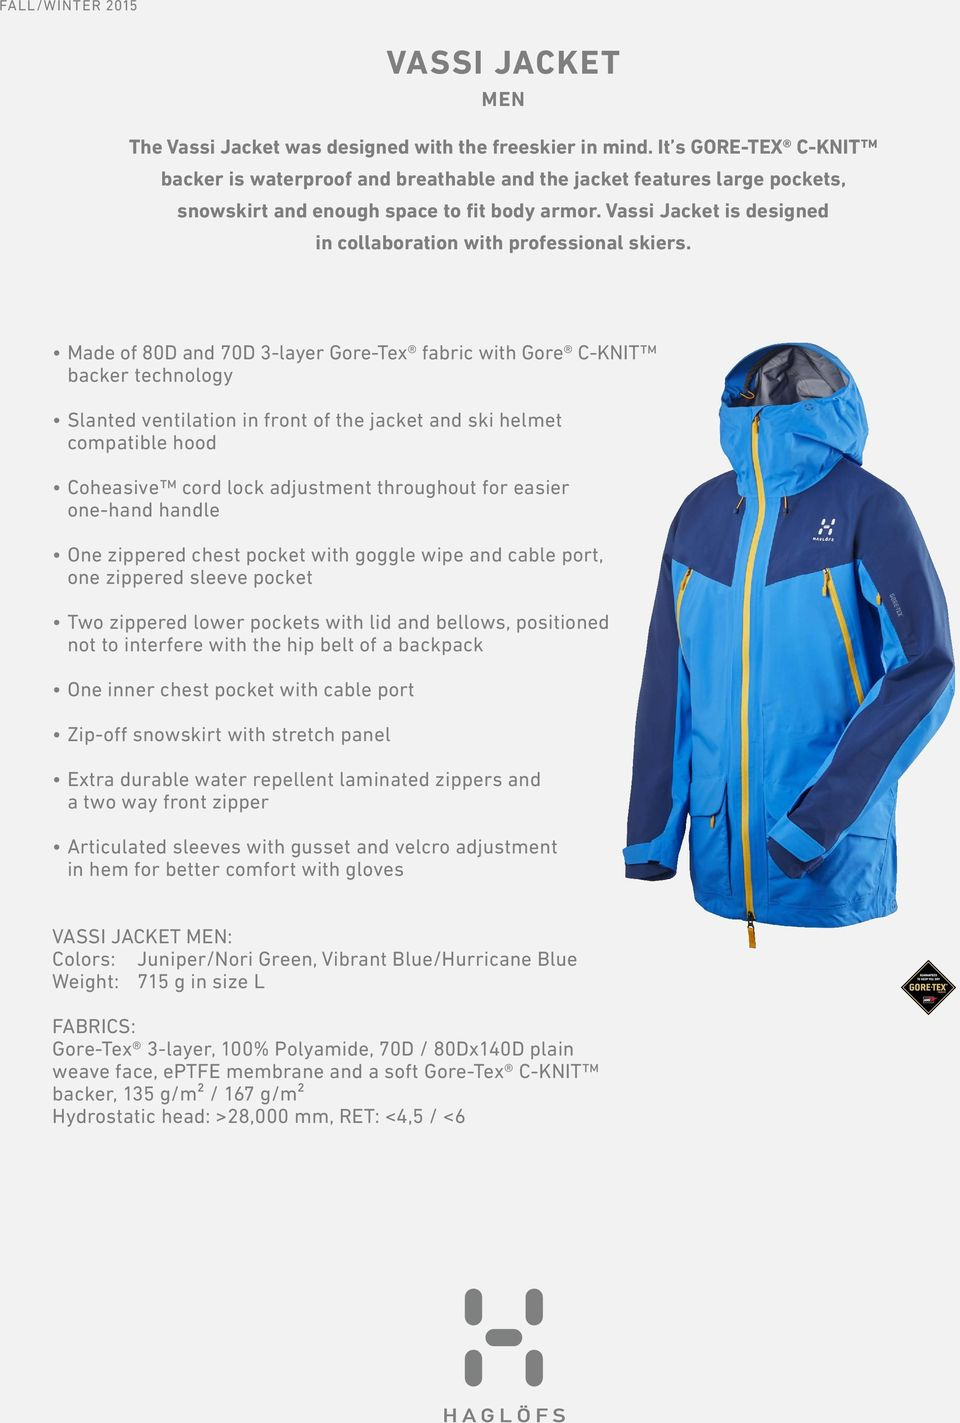 Vassi Jacket is designed in collaboration with professional skiers.